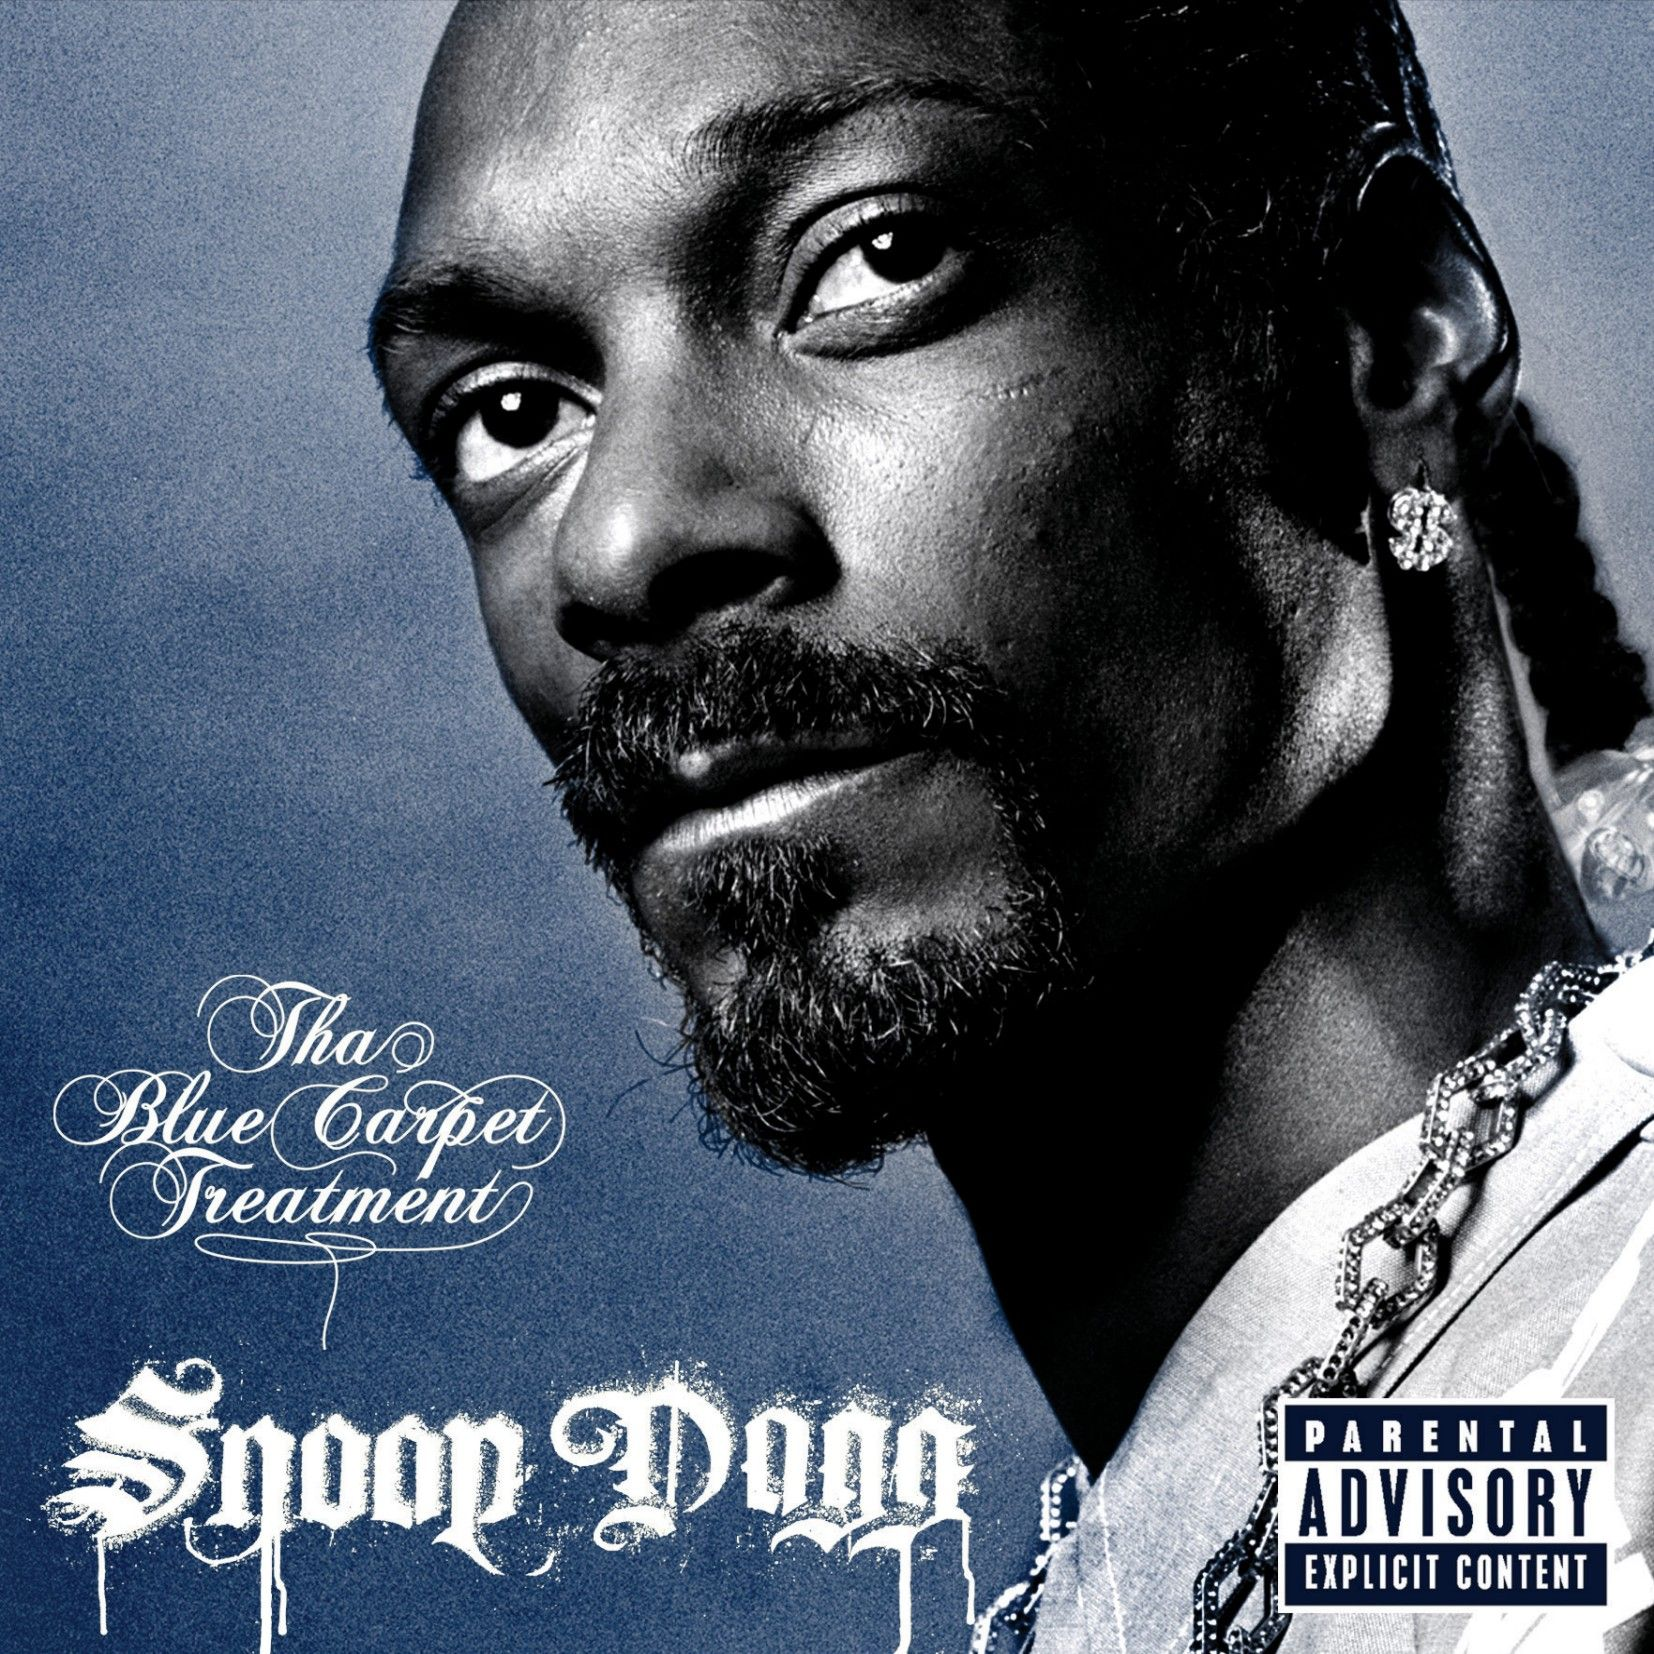 Snoop Dogg - Tha Blue Carpet Treatment album cover